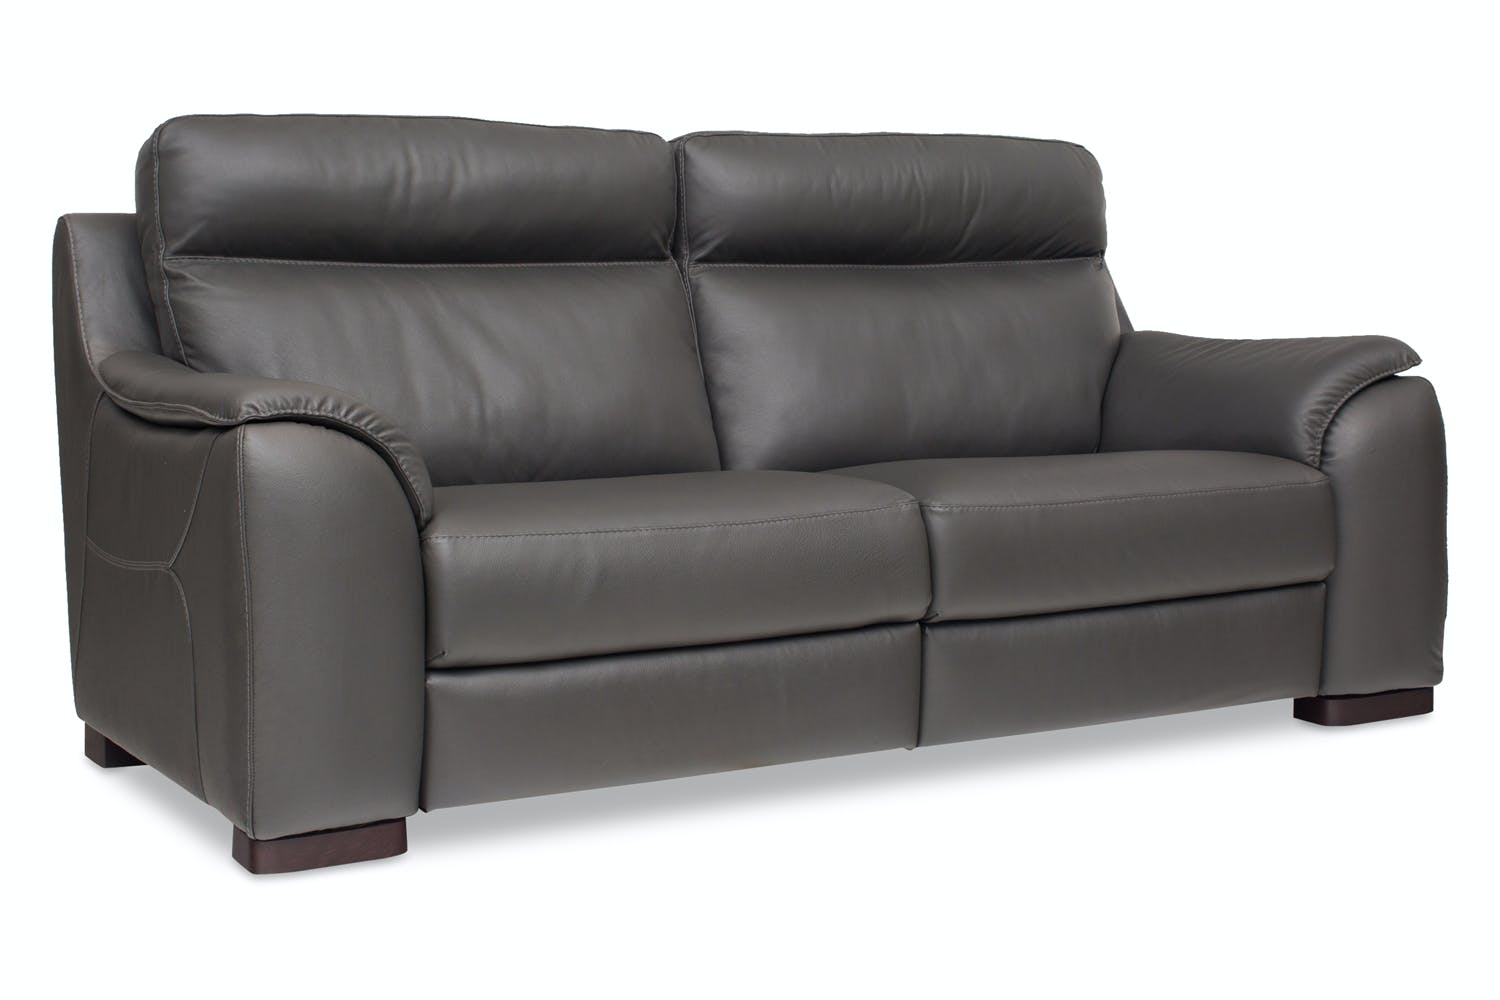 Electric Reclining Leather Sofa Gorgeous 2 Seater Electric